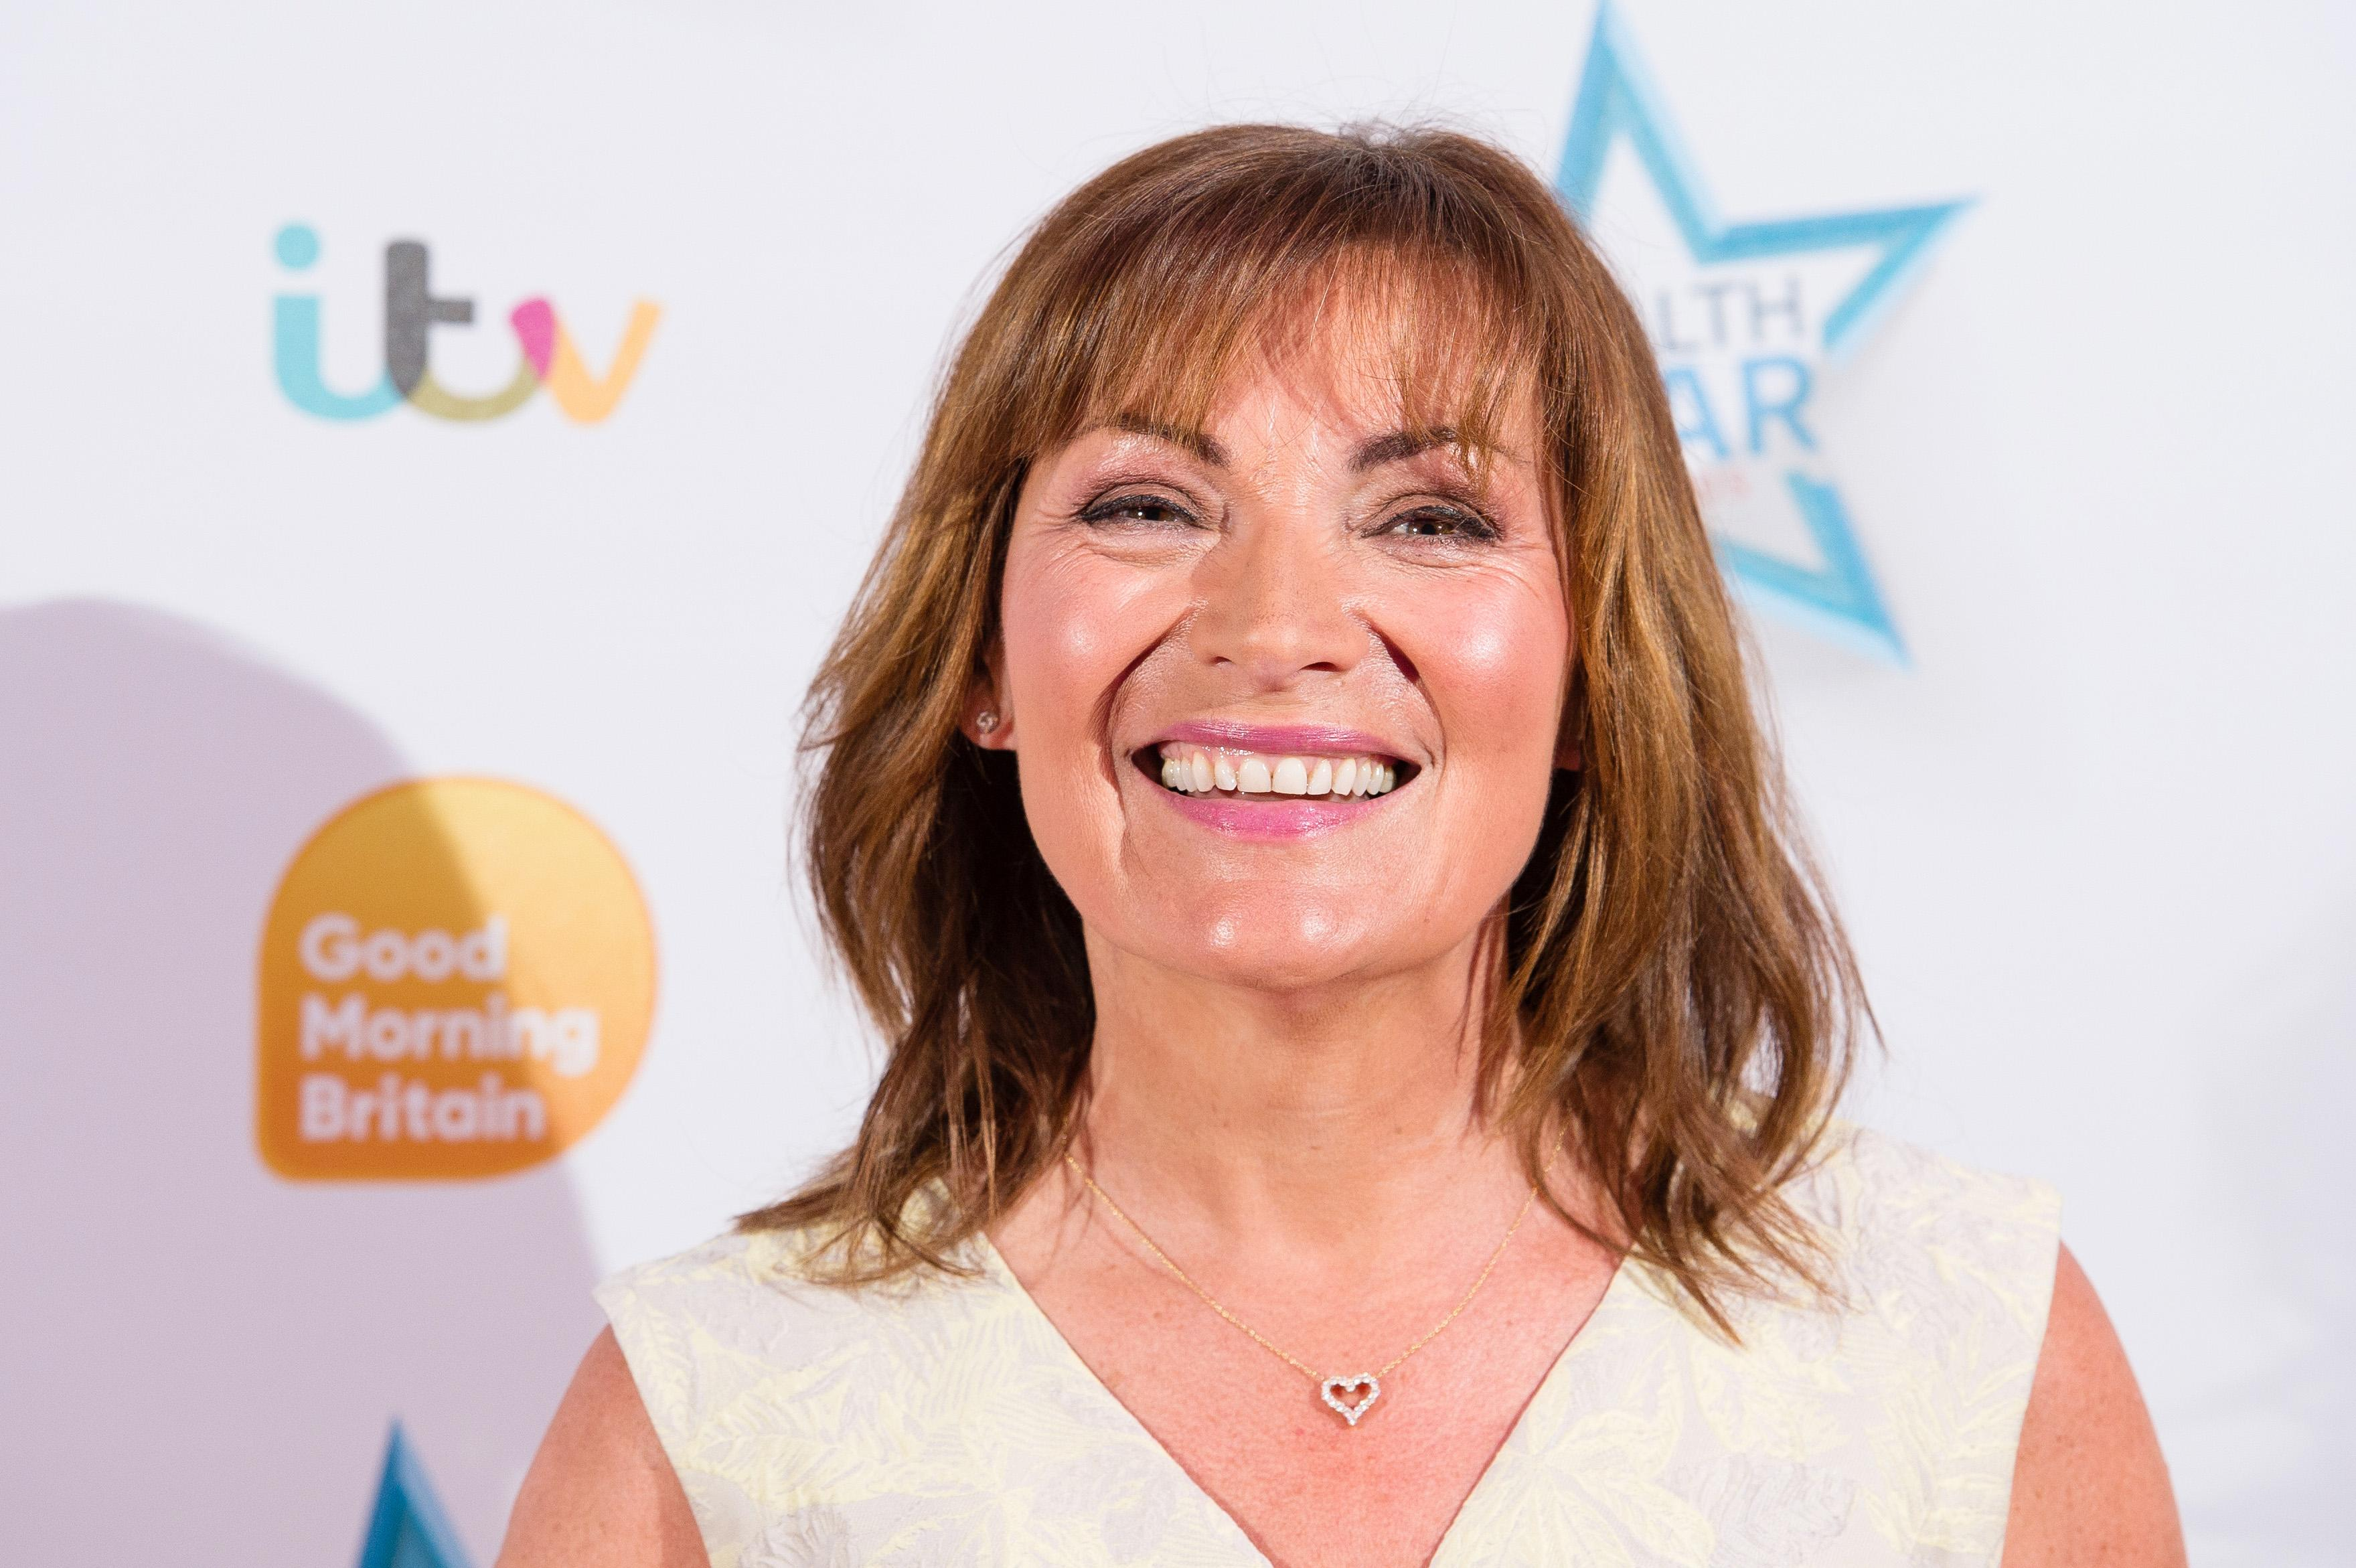 LONDON, ENGLAND - APRIL 24: Lorraine Kelly attends the Good Morning Britain Health Star Awards at the Rosewood Hotel on April 24, 2017 in London, United Kingdom. (Photo by Jeff Spicer/Getty Images)